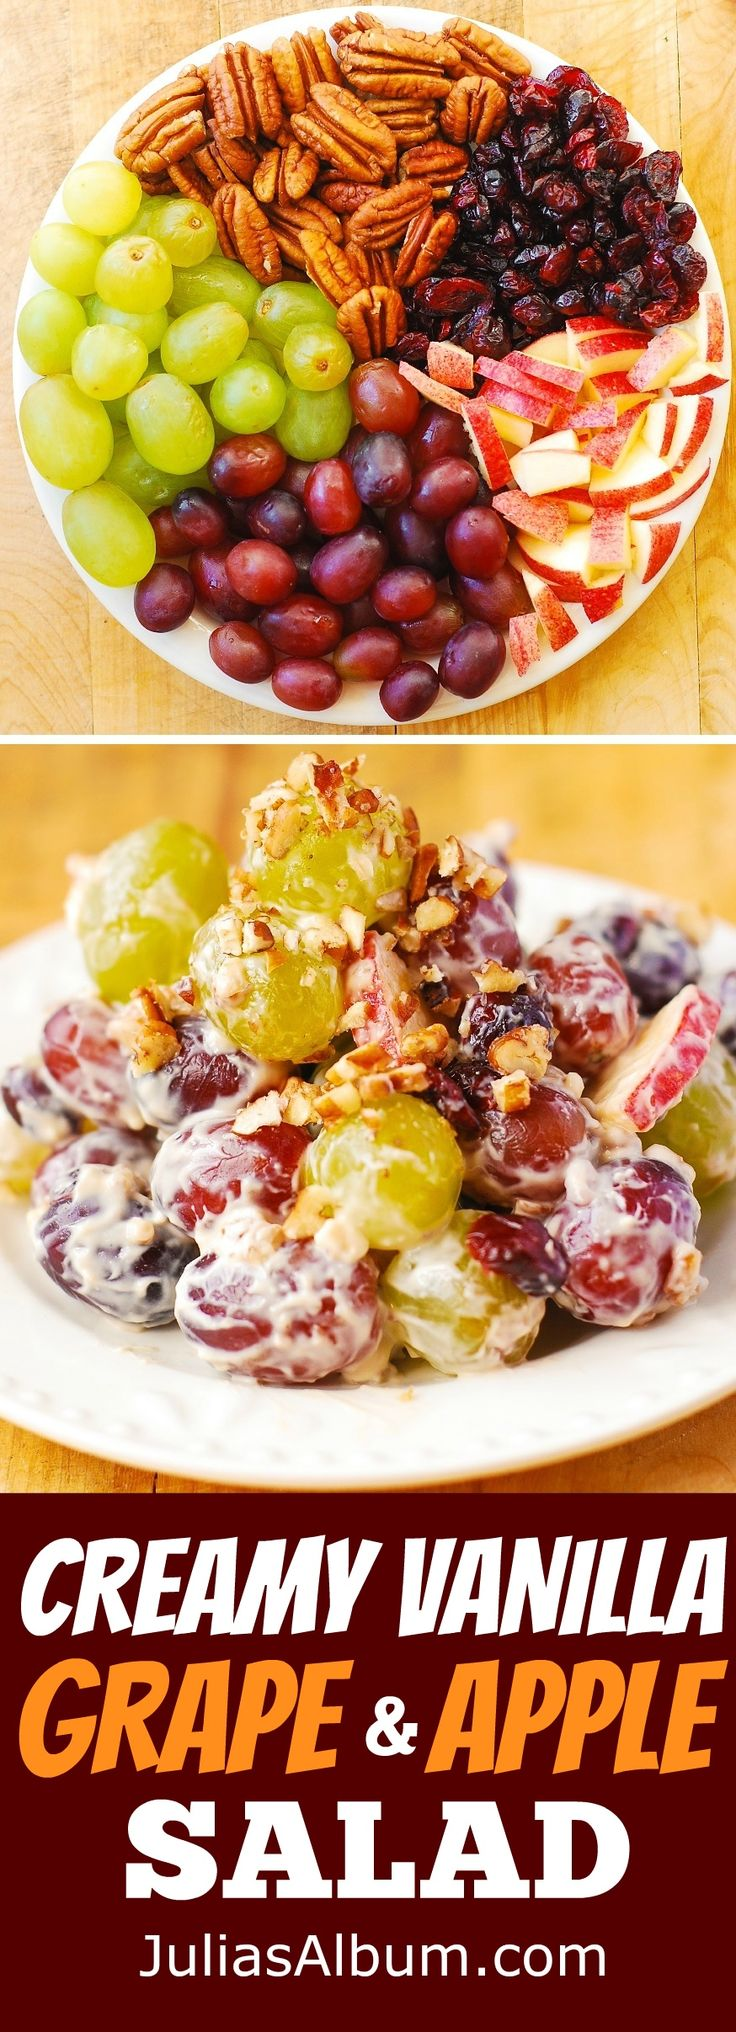 Slow Cooker: Creamy Vanilla Grape & Apple Salad